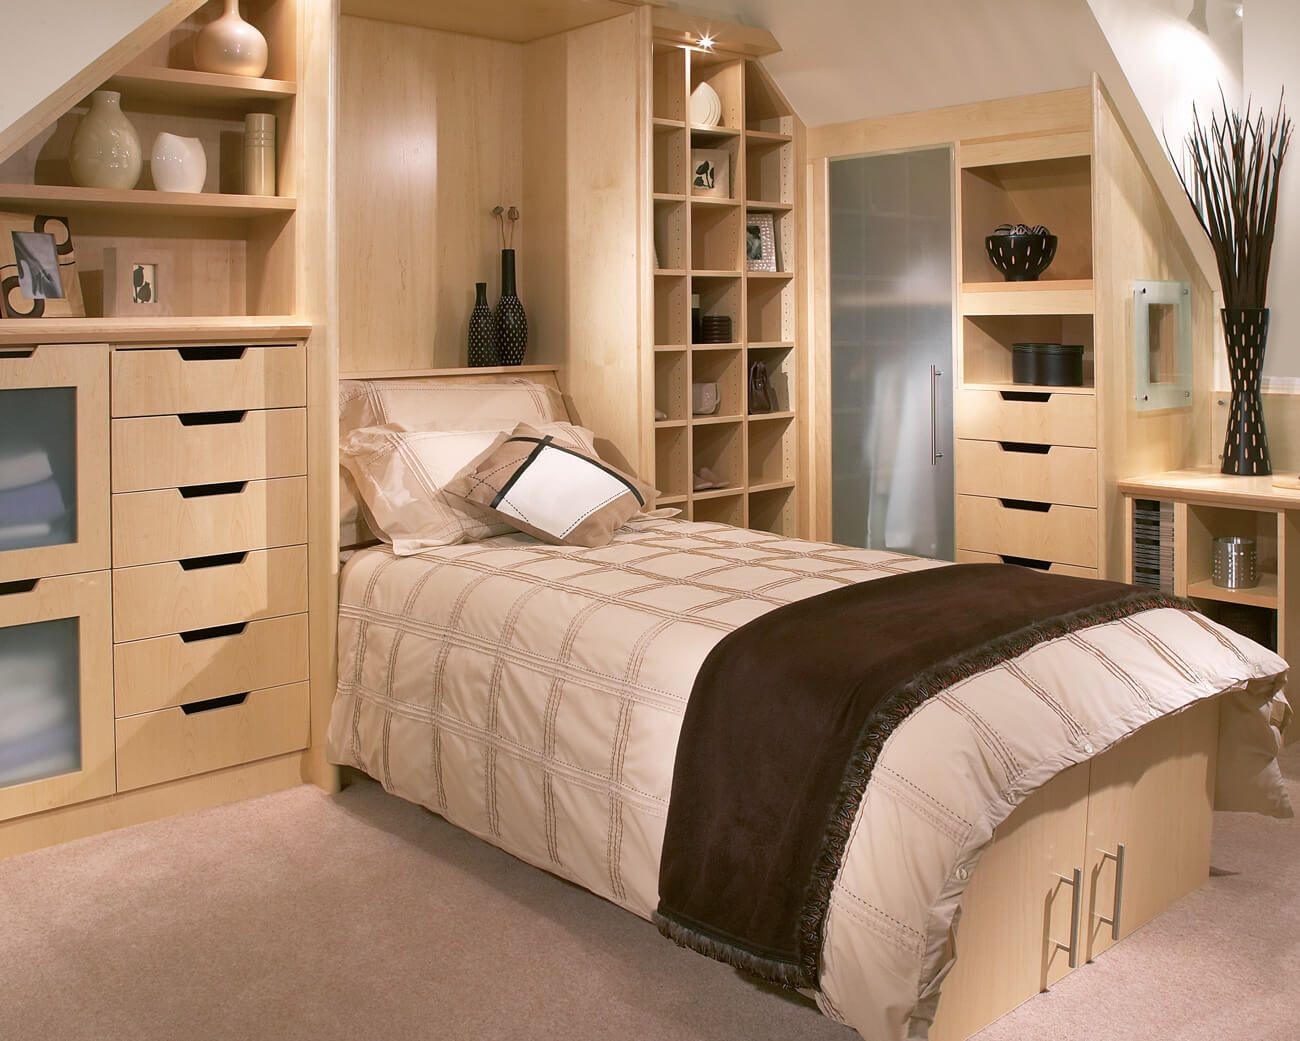 Pull Down Bed with Storage UK Fitted bedroom furniture